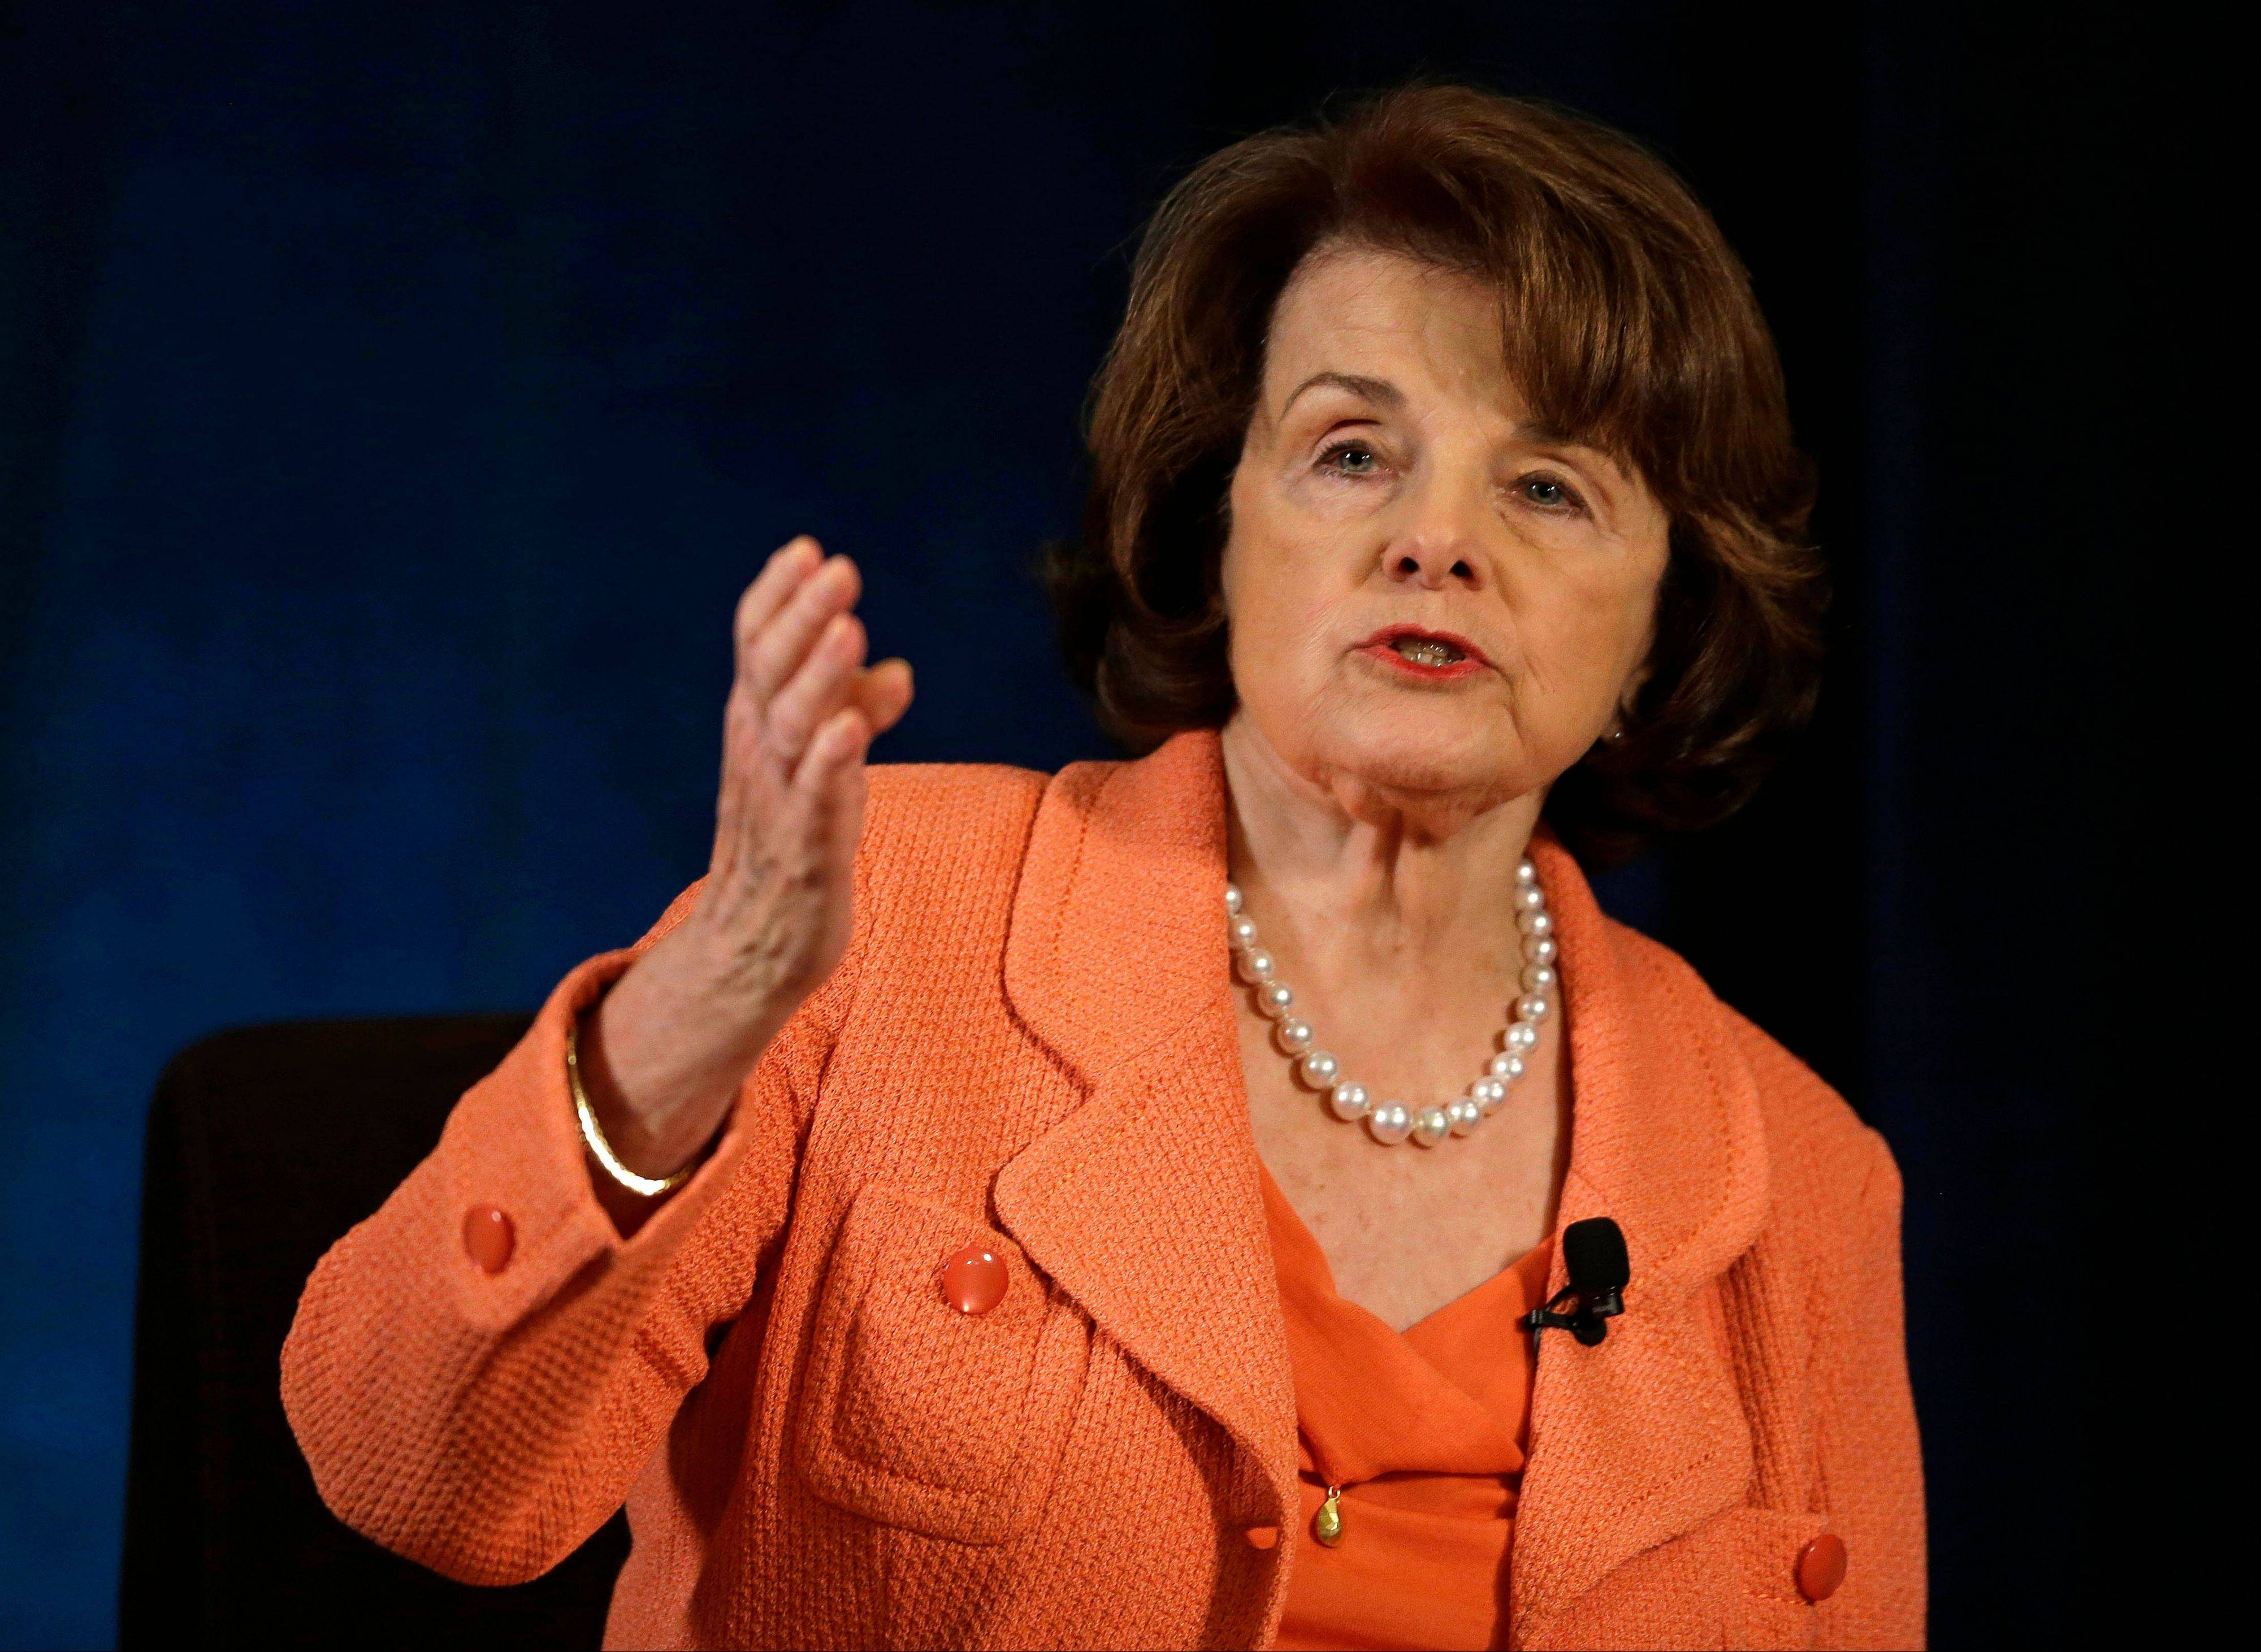 Sen. Dianne Feinstein, who chairs the Senate Intelligence Committee, said President Obama�s plan to require a special judge�s advance approval before intelligence agencies can examine someone�s data, won�t work.